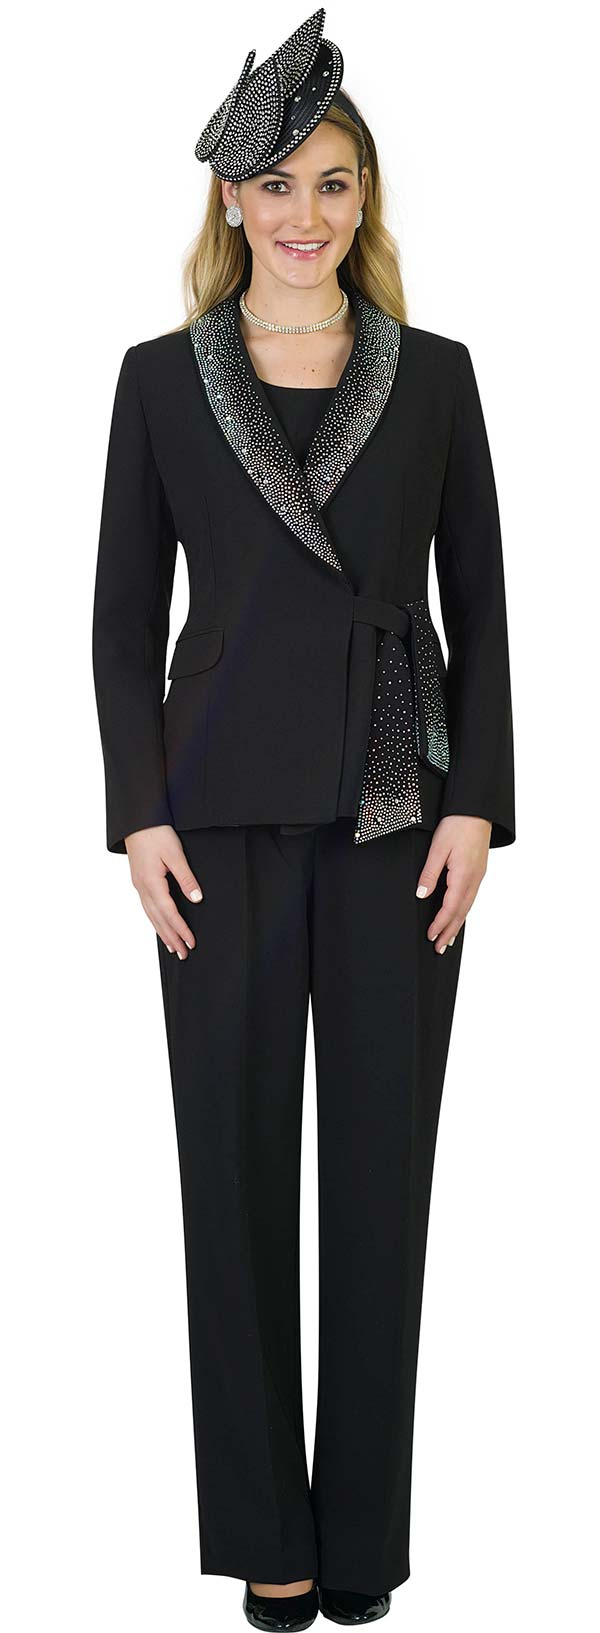 Lily and Taylor 4373-Black - Womens Three Piece Pant Suit With Rhinestone Encrusted Shawl Lapel & Sash